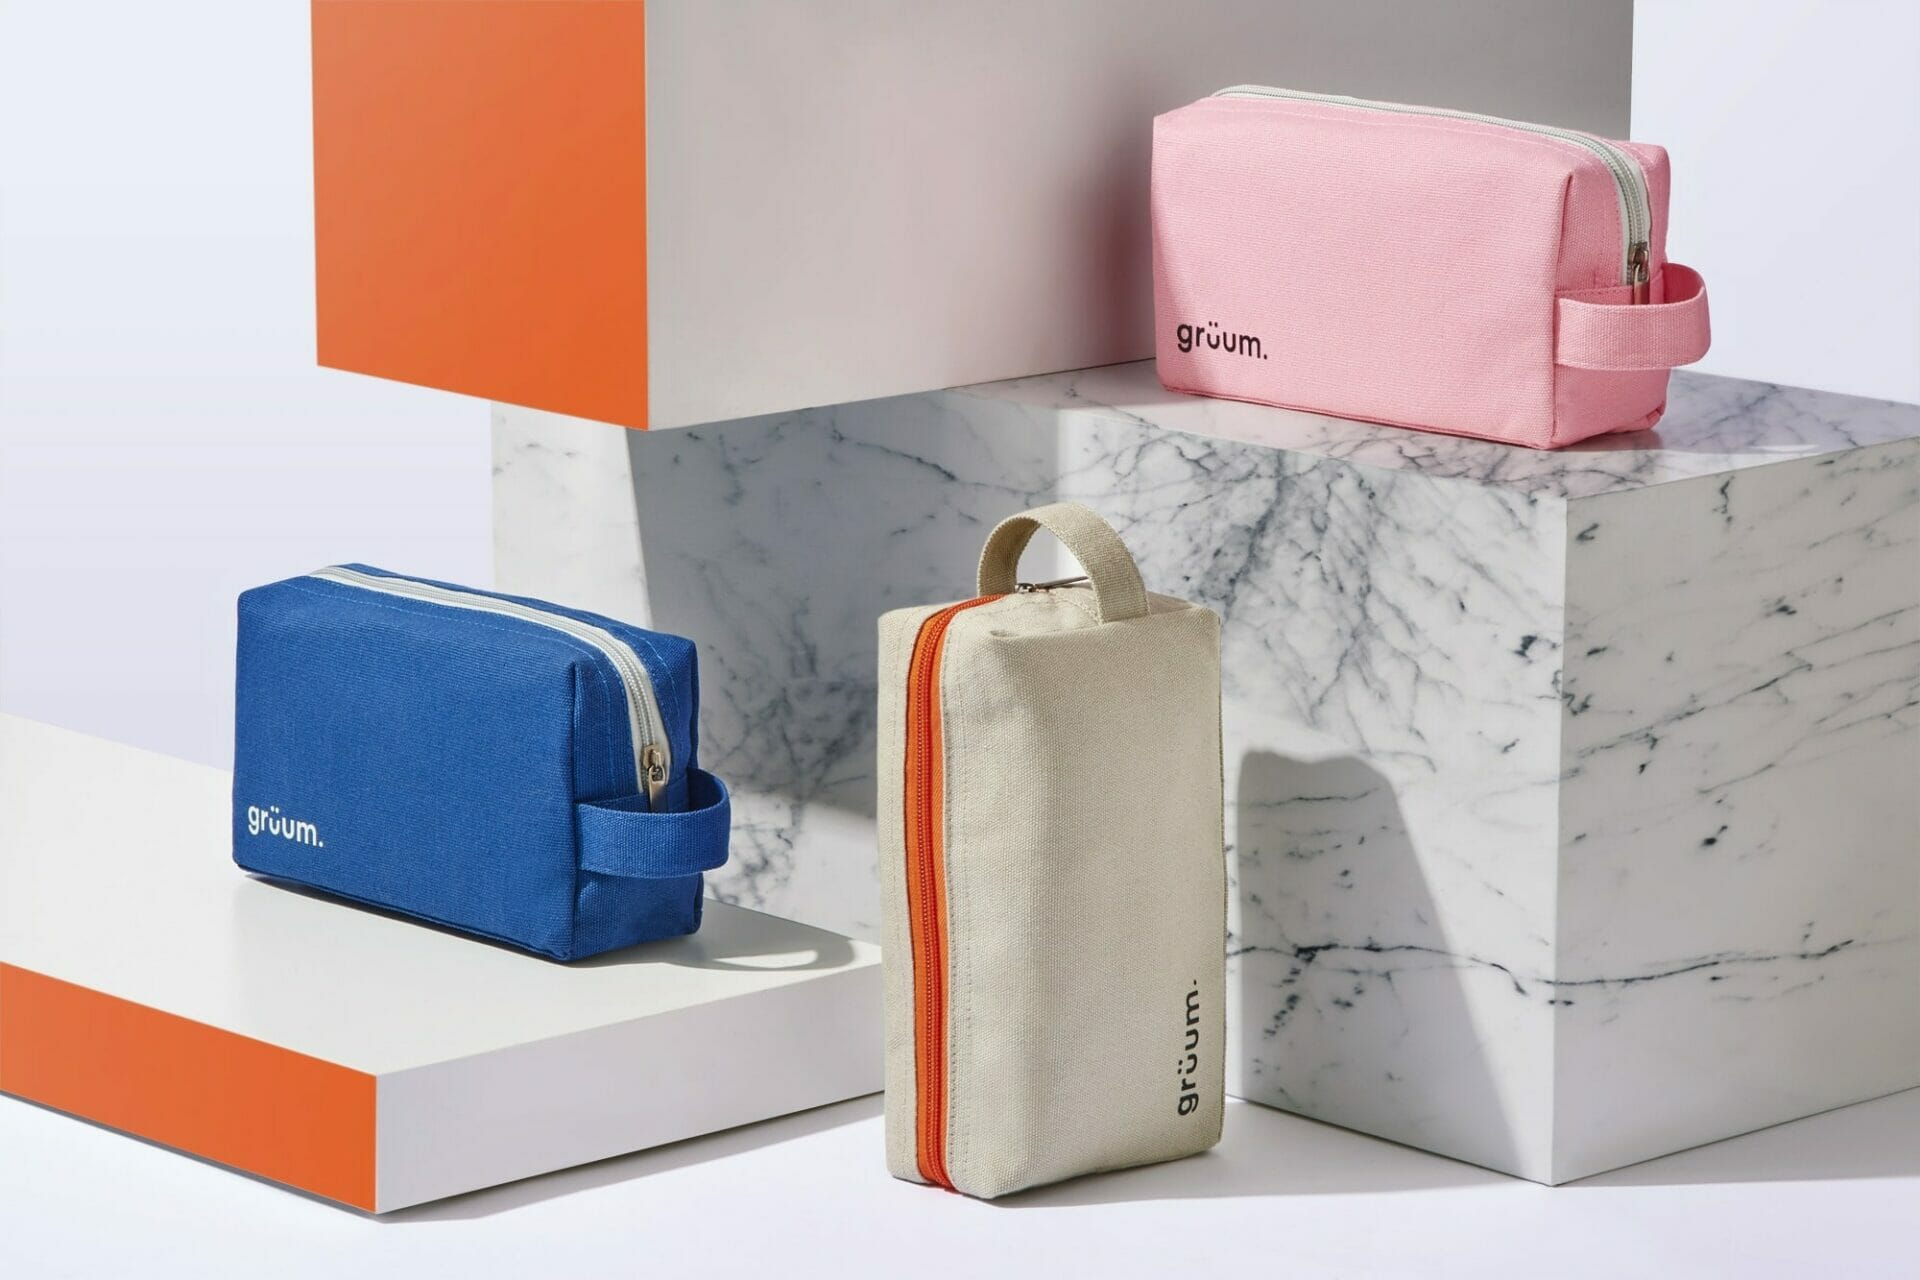 Gruum product image with pink, blue and stone reise washbags